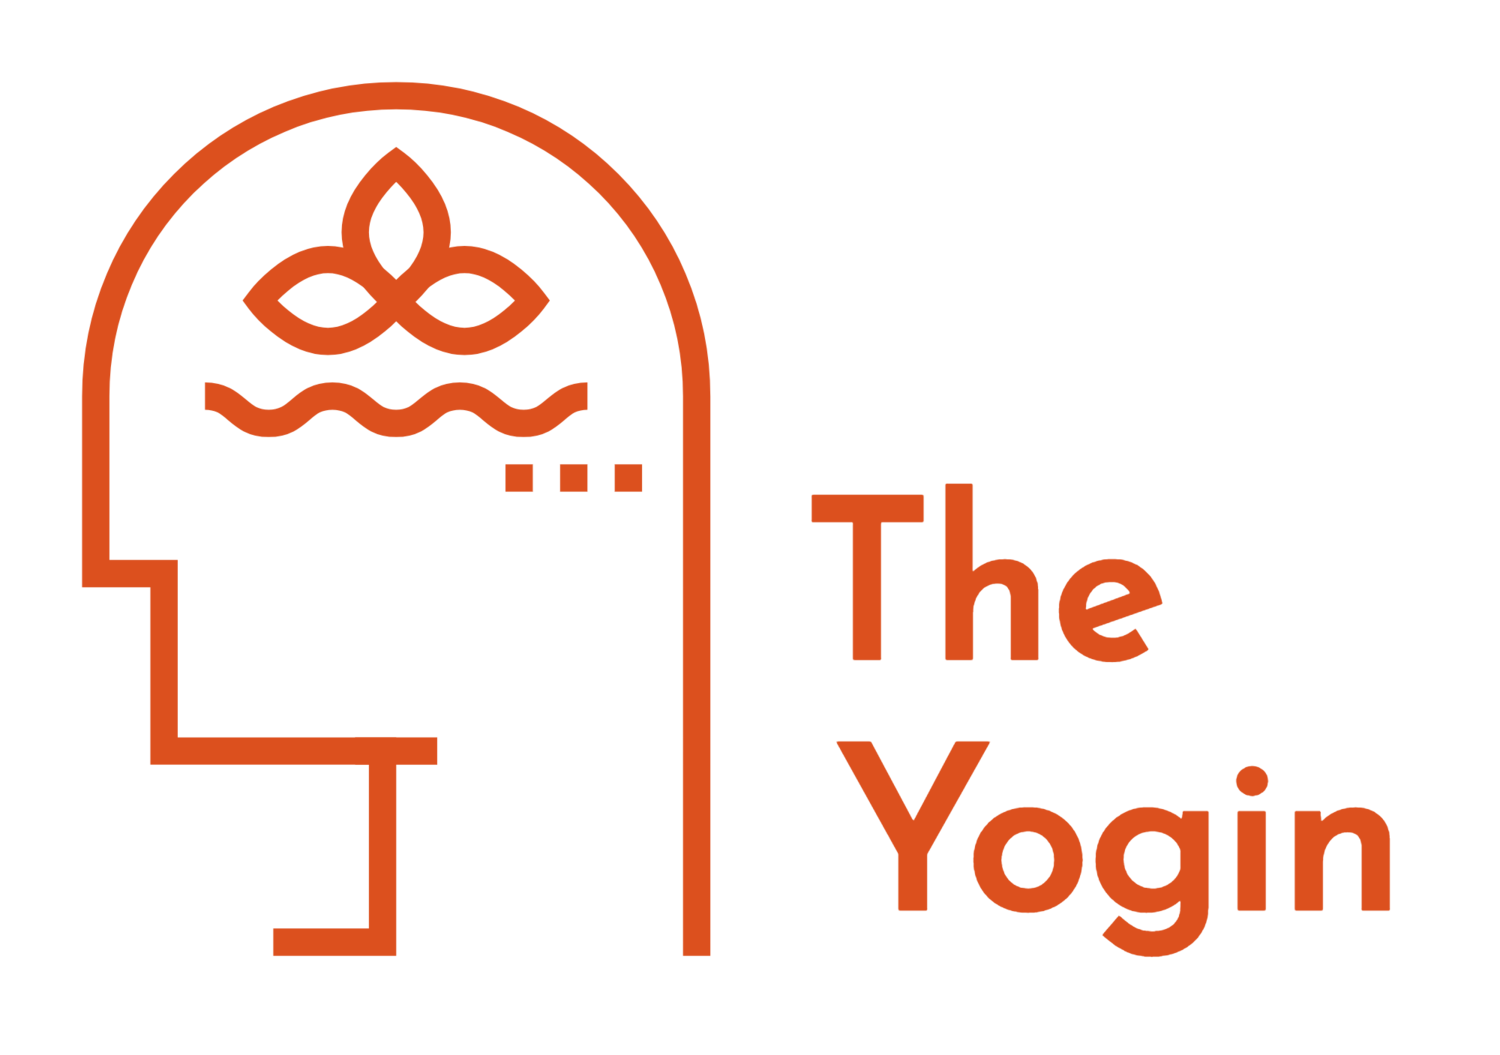 The Yogin